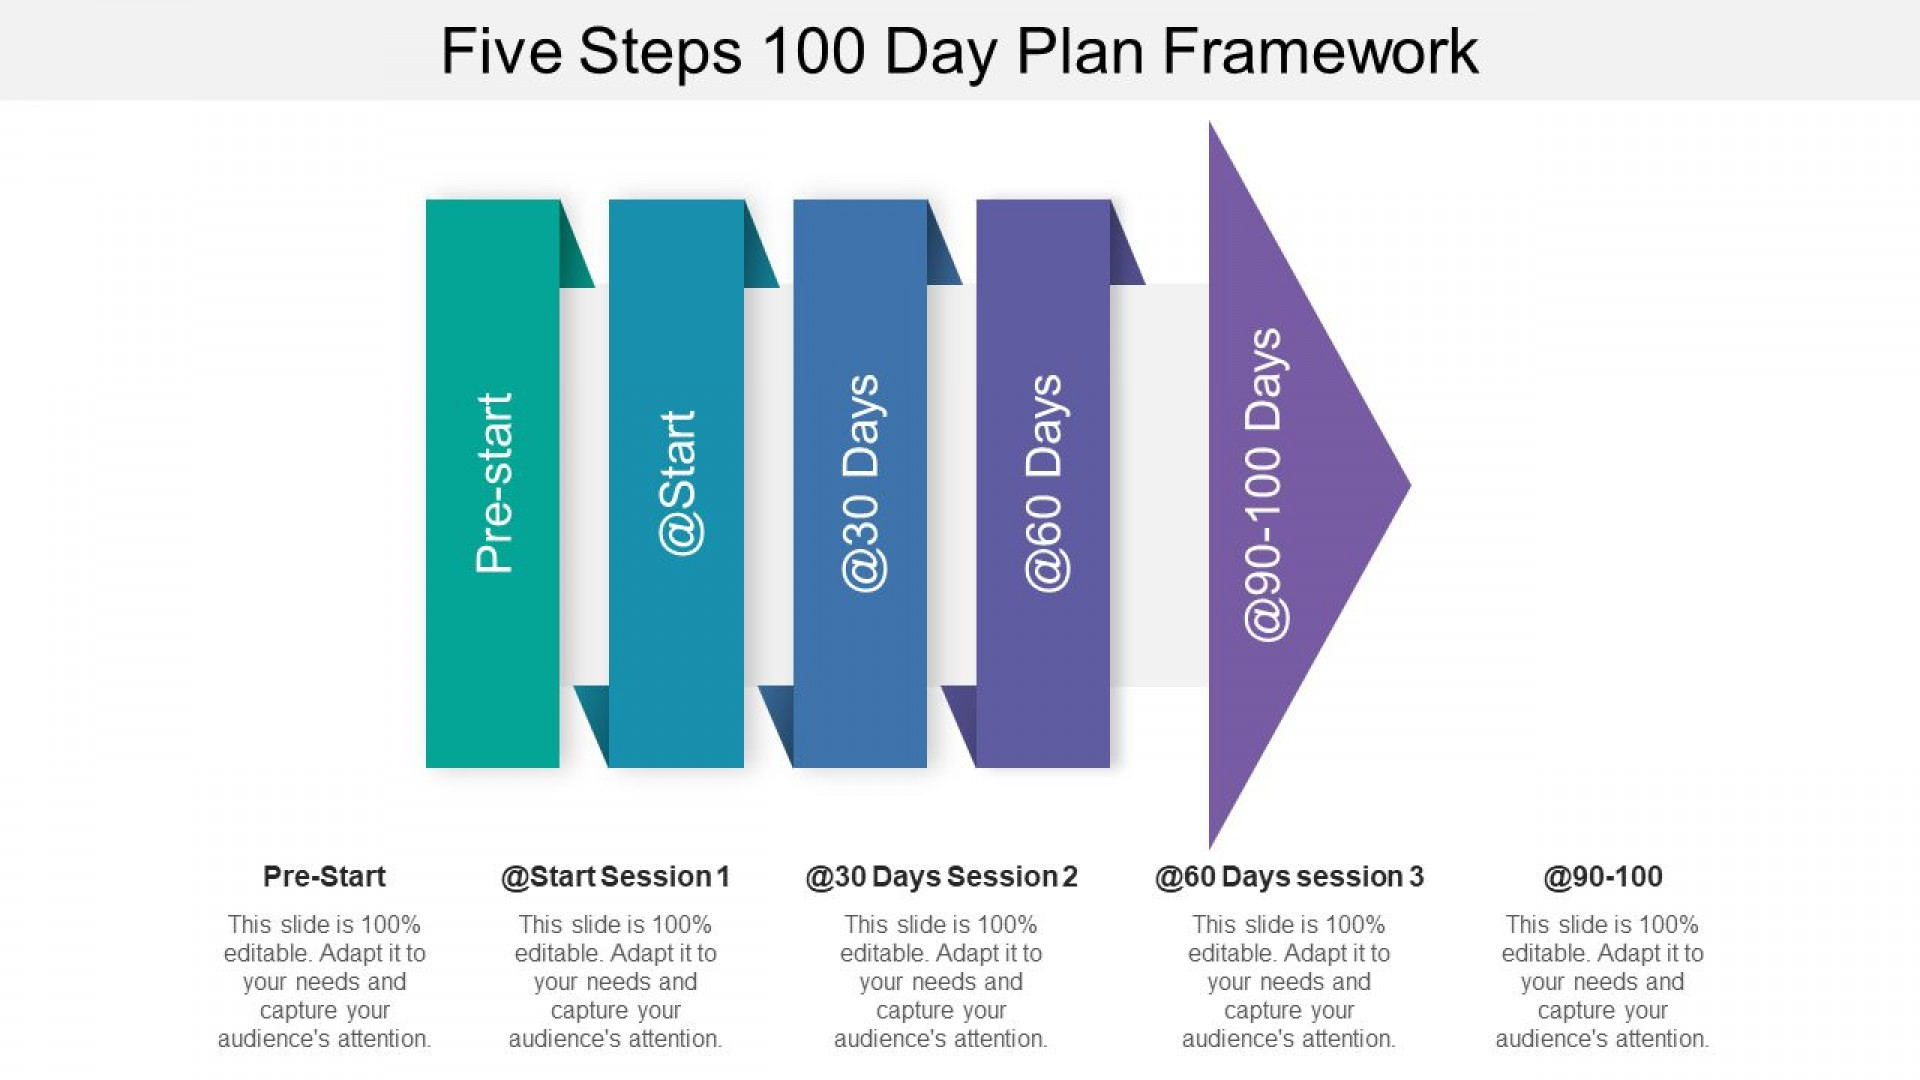 001 Marvelou 100 Day Planning Template Image  Plan Powerpoint Free New Job Example1920